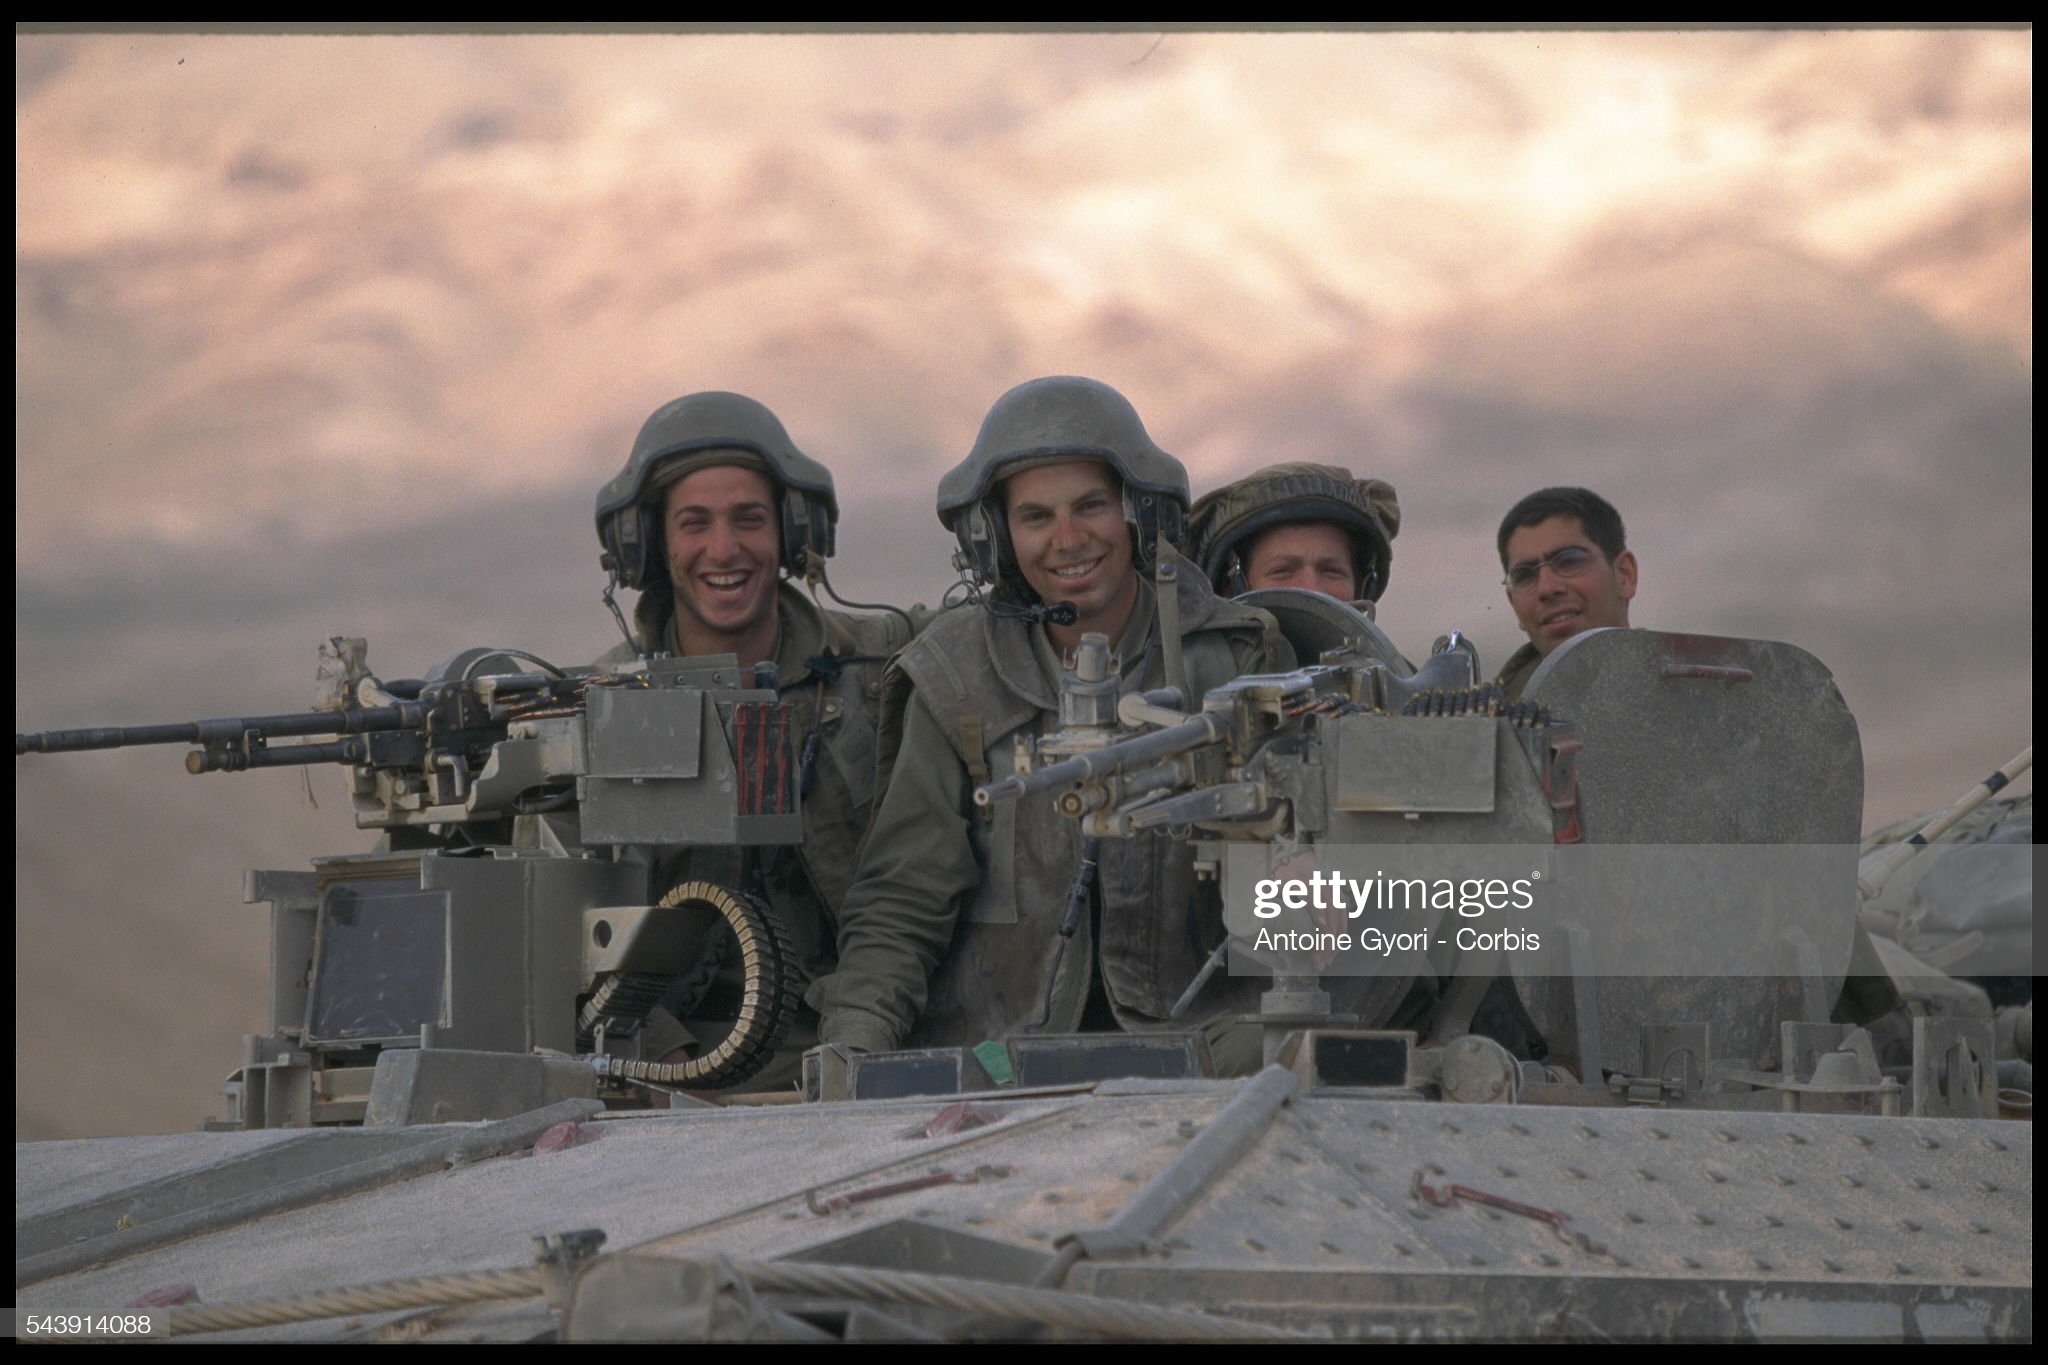 https://media.gettyimages.com/photos/soldiers-on-board-a-tank-picture-id543914088?s=2048x2048